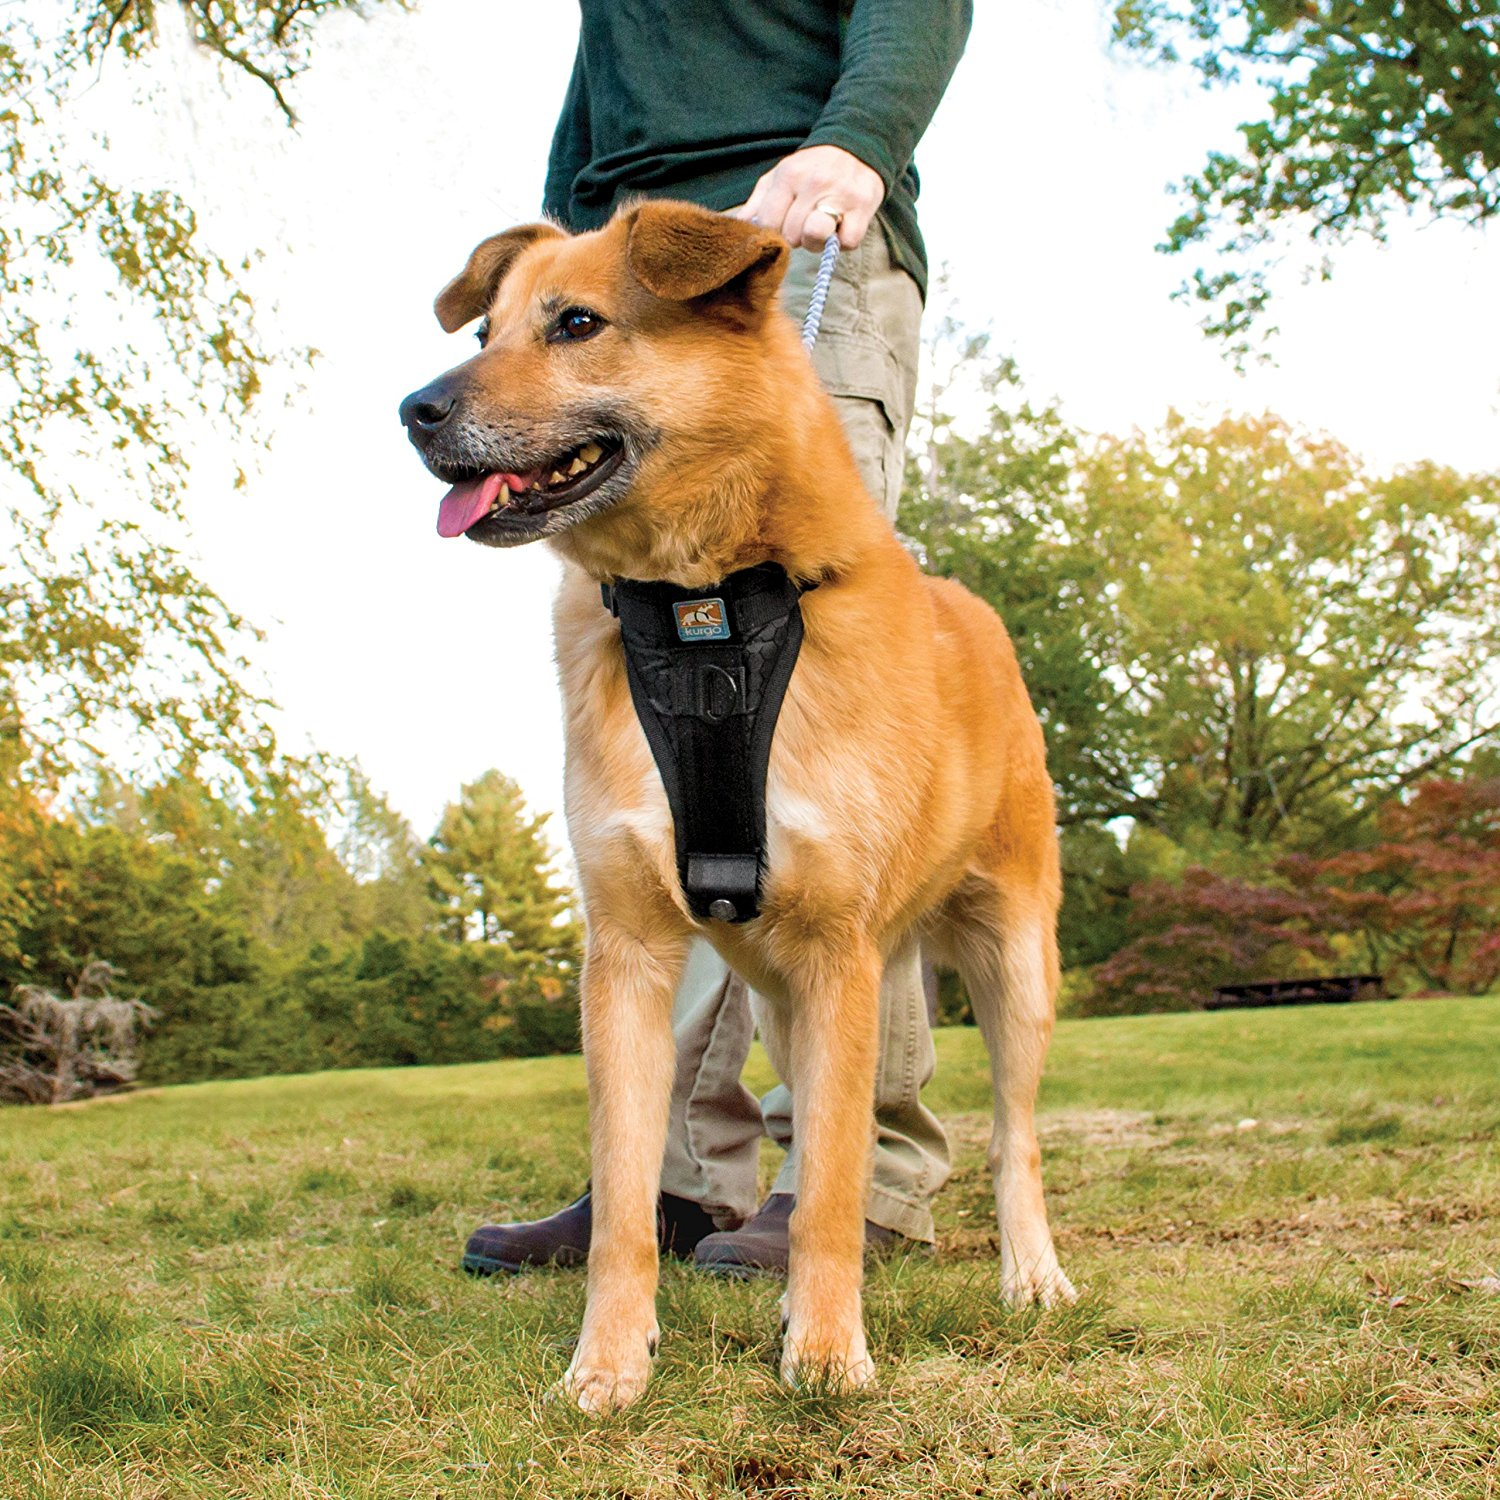 Nifty Dog Harness Dog Harness Options Dogs Reddit Your Dog Pet Territory Harness Dogs That Chew Harness bark post Best Harness For Dogs